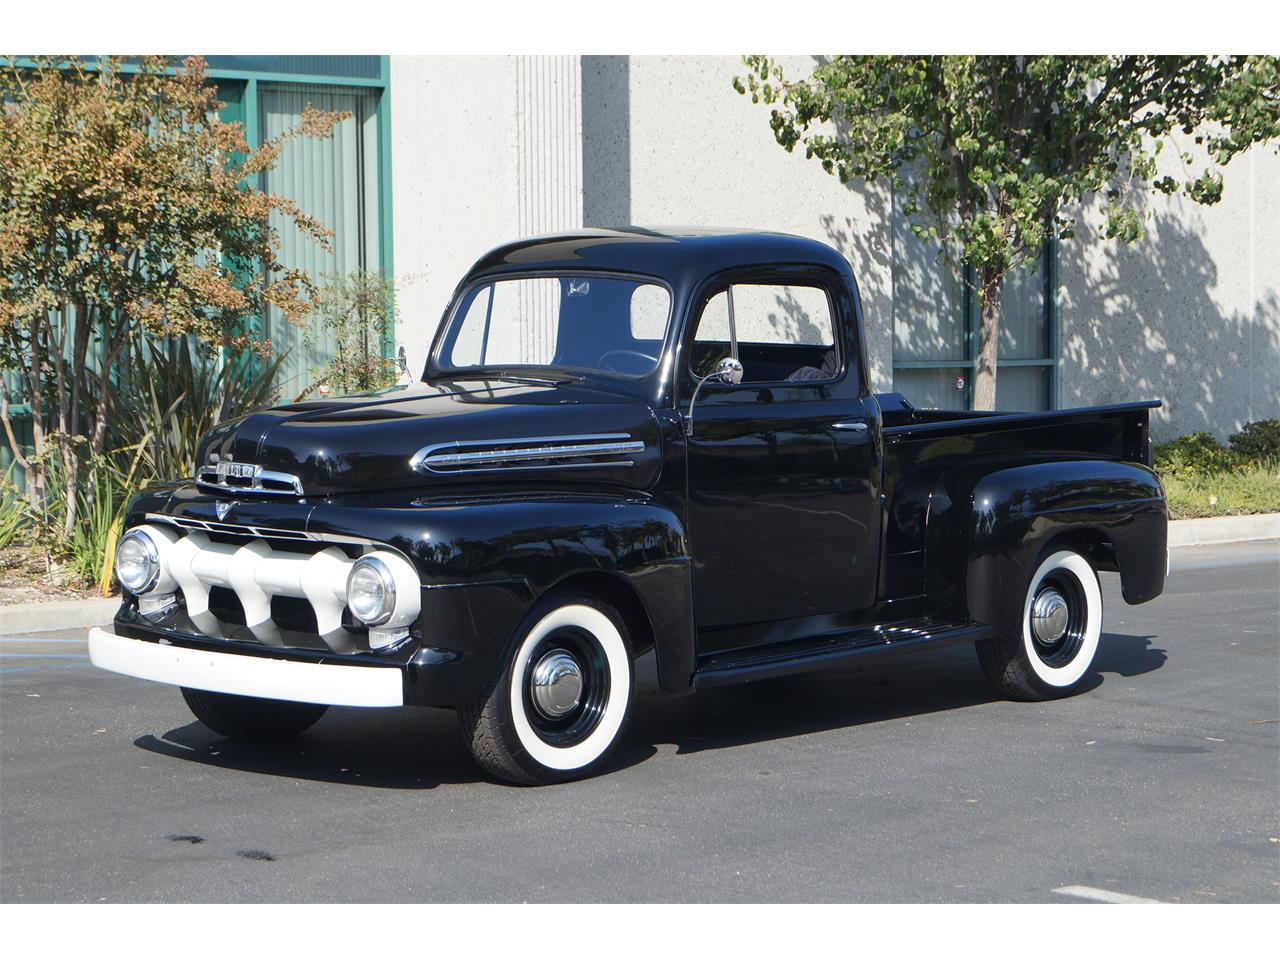 for sale 1951 ford f1 in thousand oaks, california Mounting a 302 in a Ford 51 F1